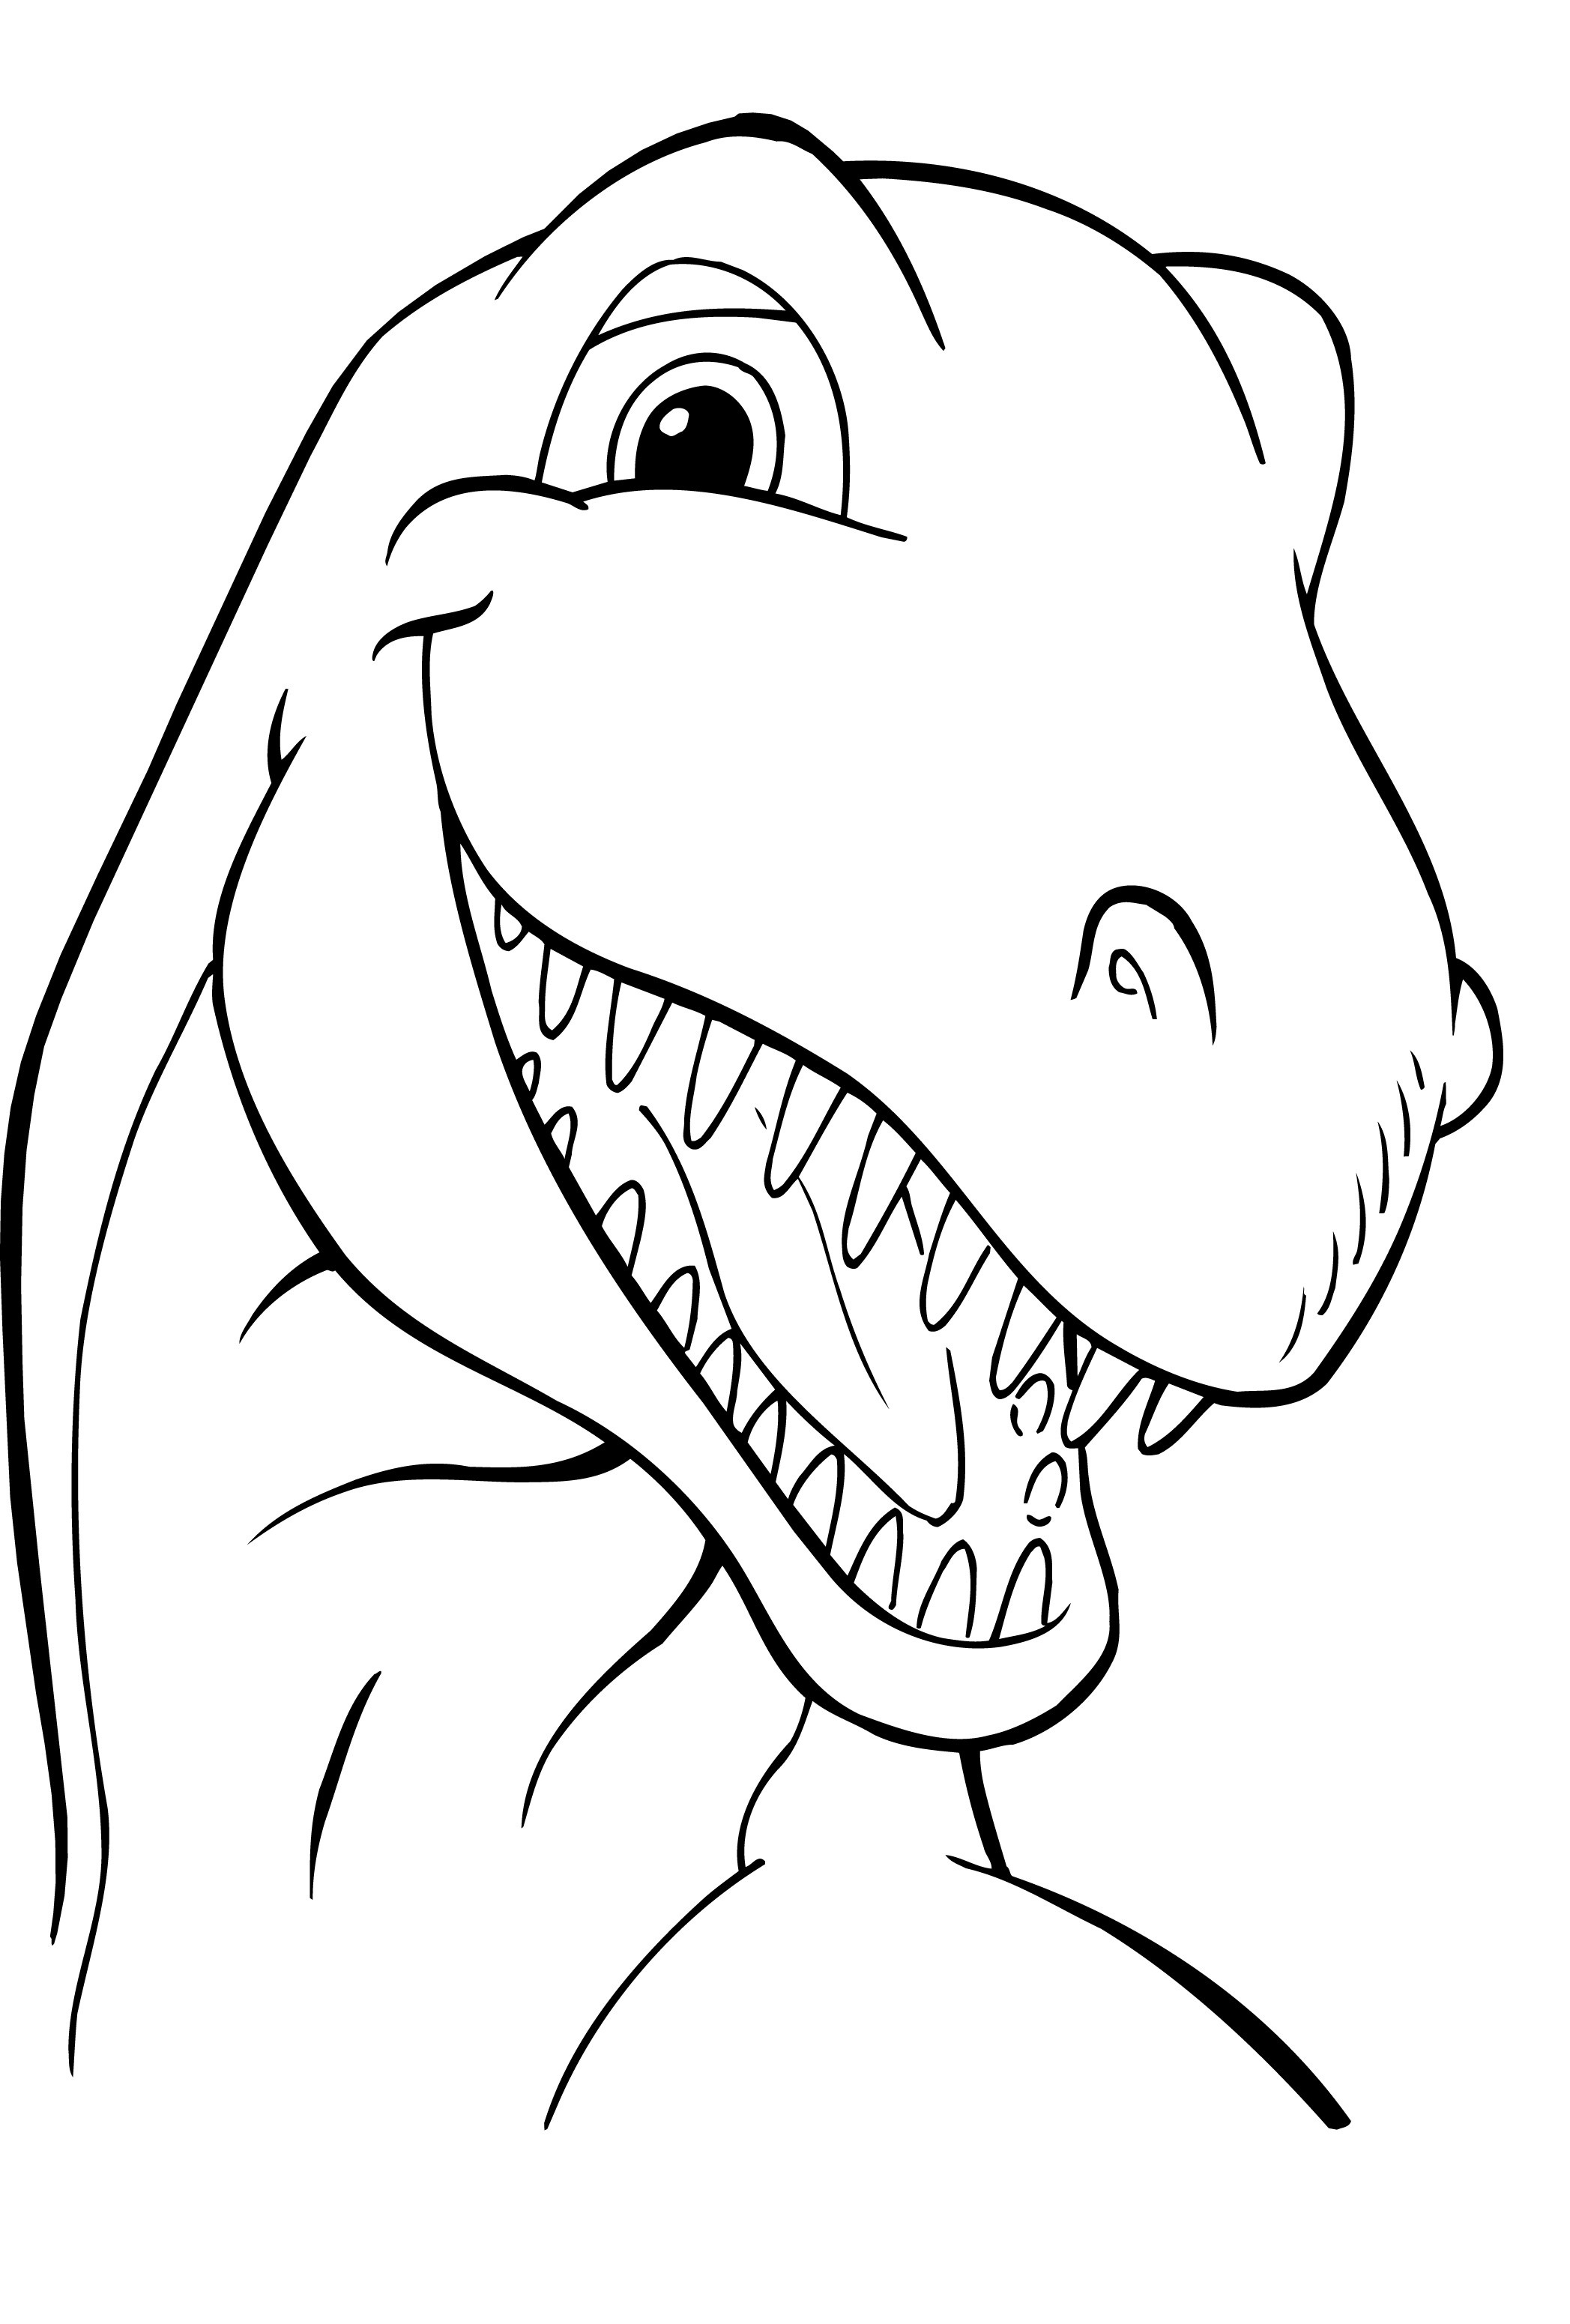 dinosaurus coloring pages - photo#21